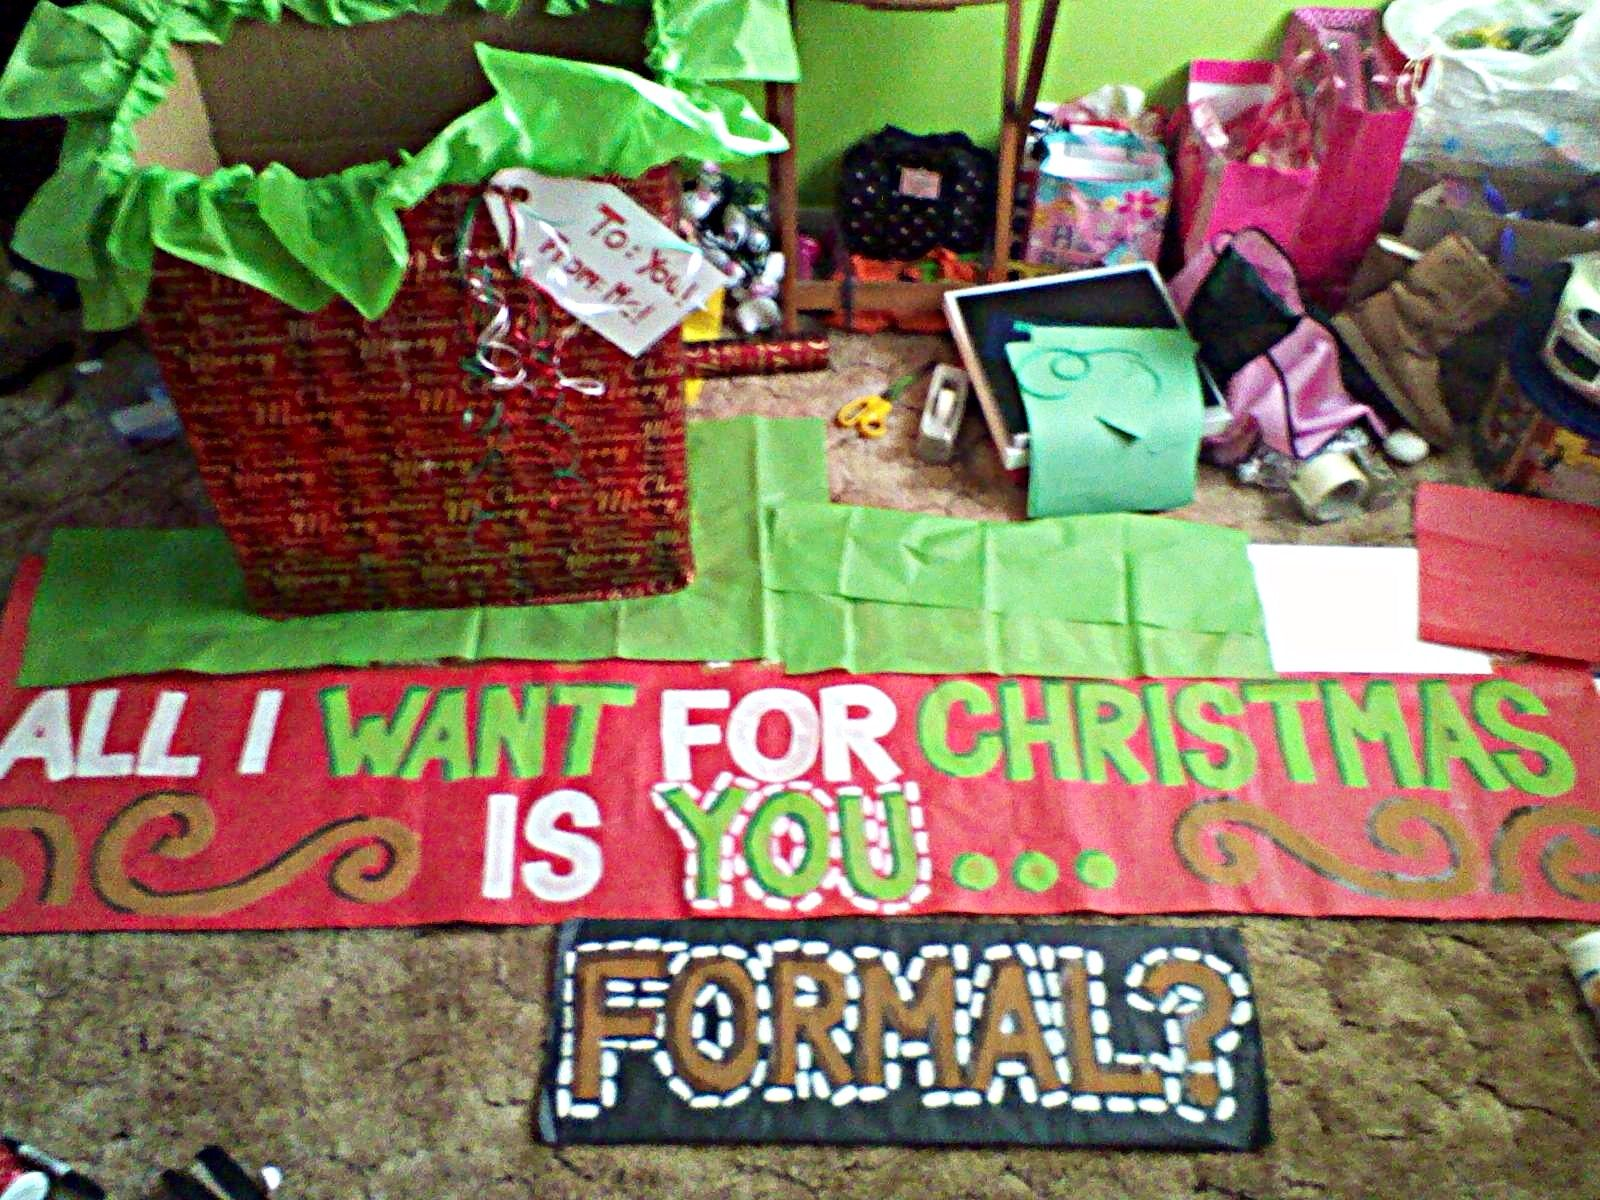 Winter Formal Dance Proposal Perfect For Christmas Time I Made This For My Friend To Ask A Girl On Chr Dance Proposal Christmas Proposal Cute Christmas Ideas